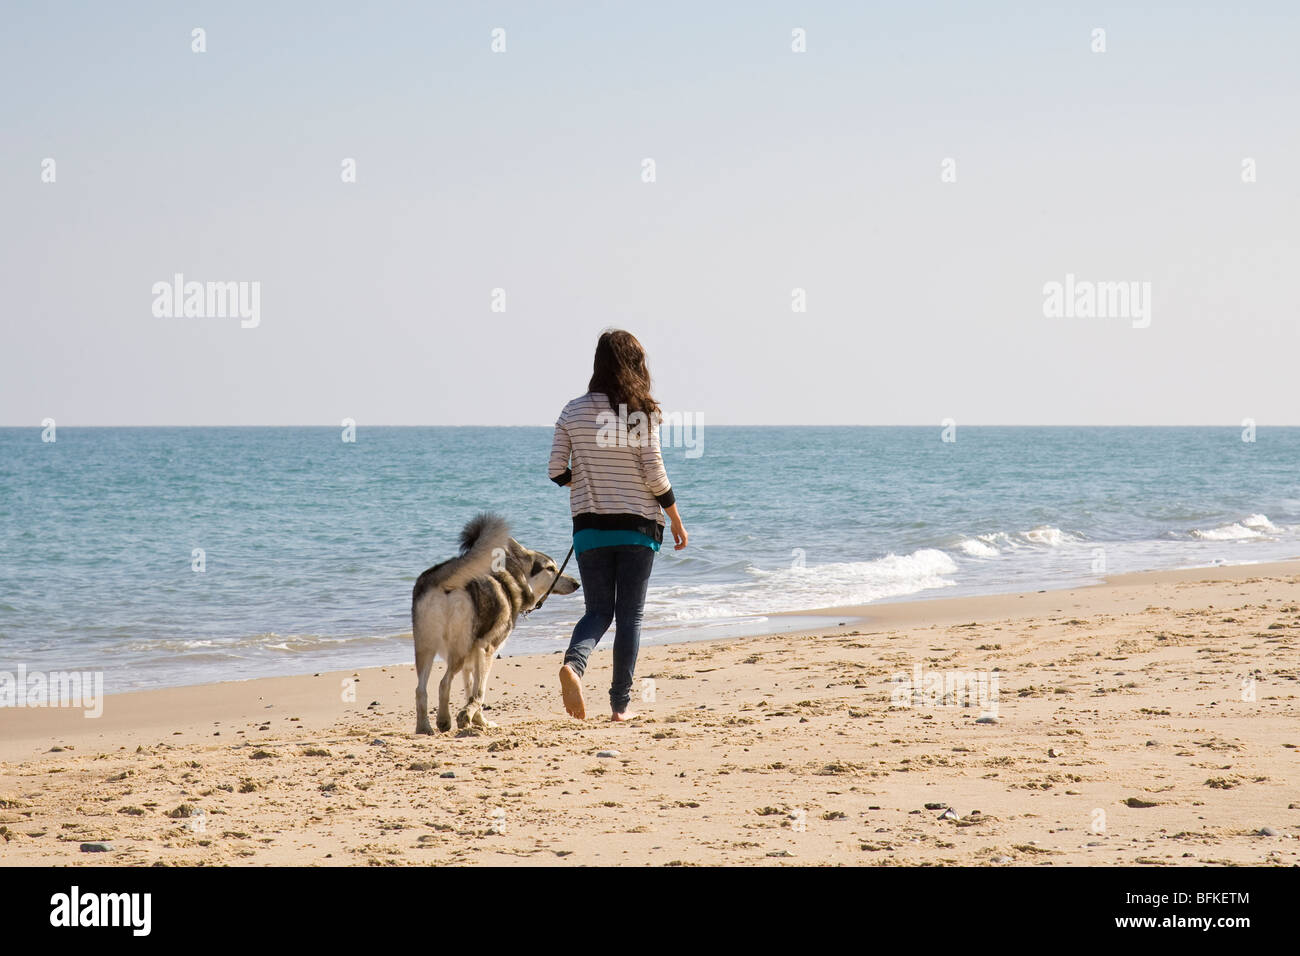 Teenage Girl Walking with Inuit Dog on Beach Norfolk UK - Stock Image